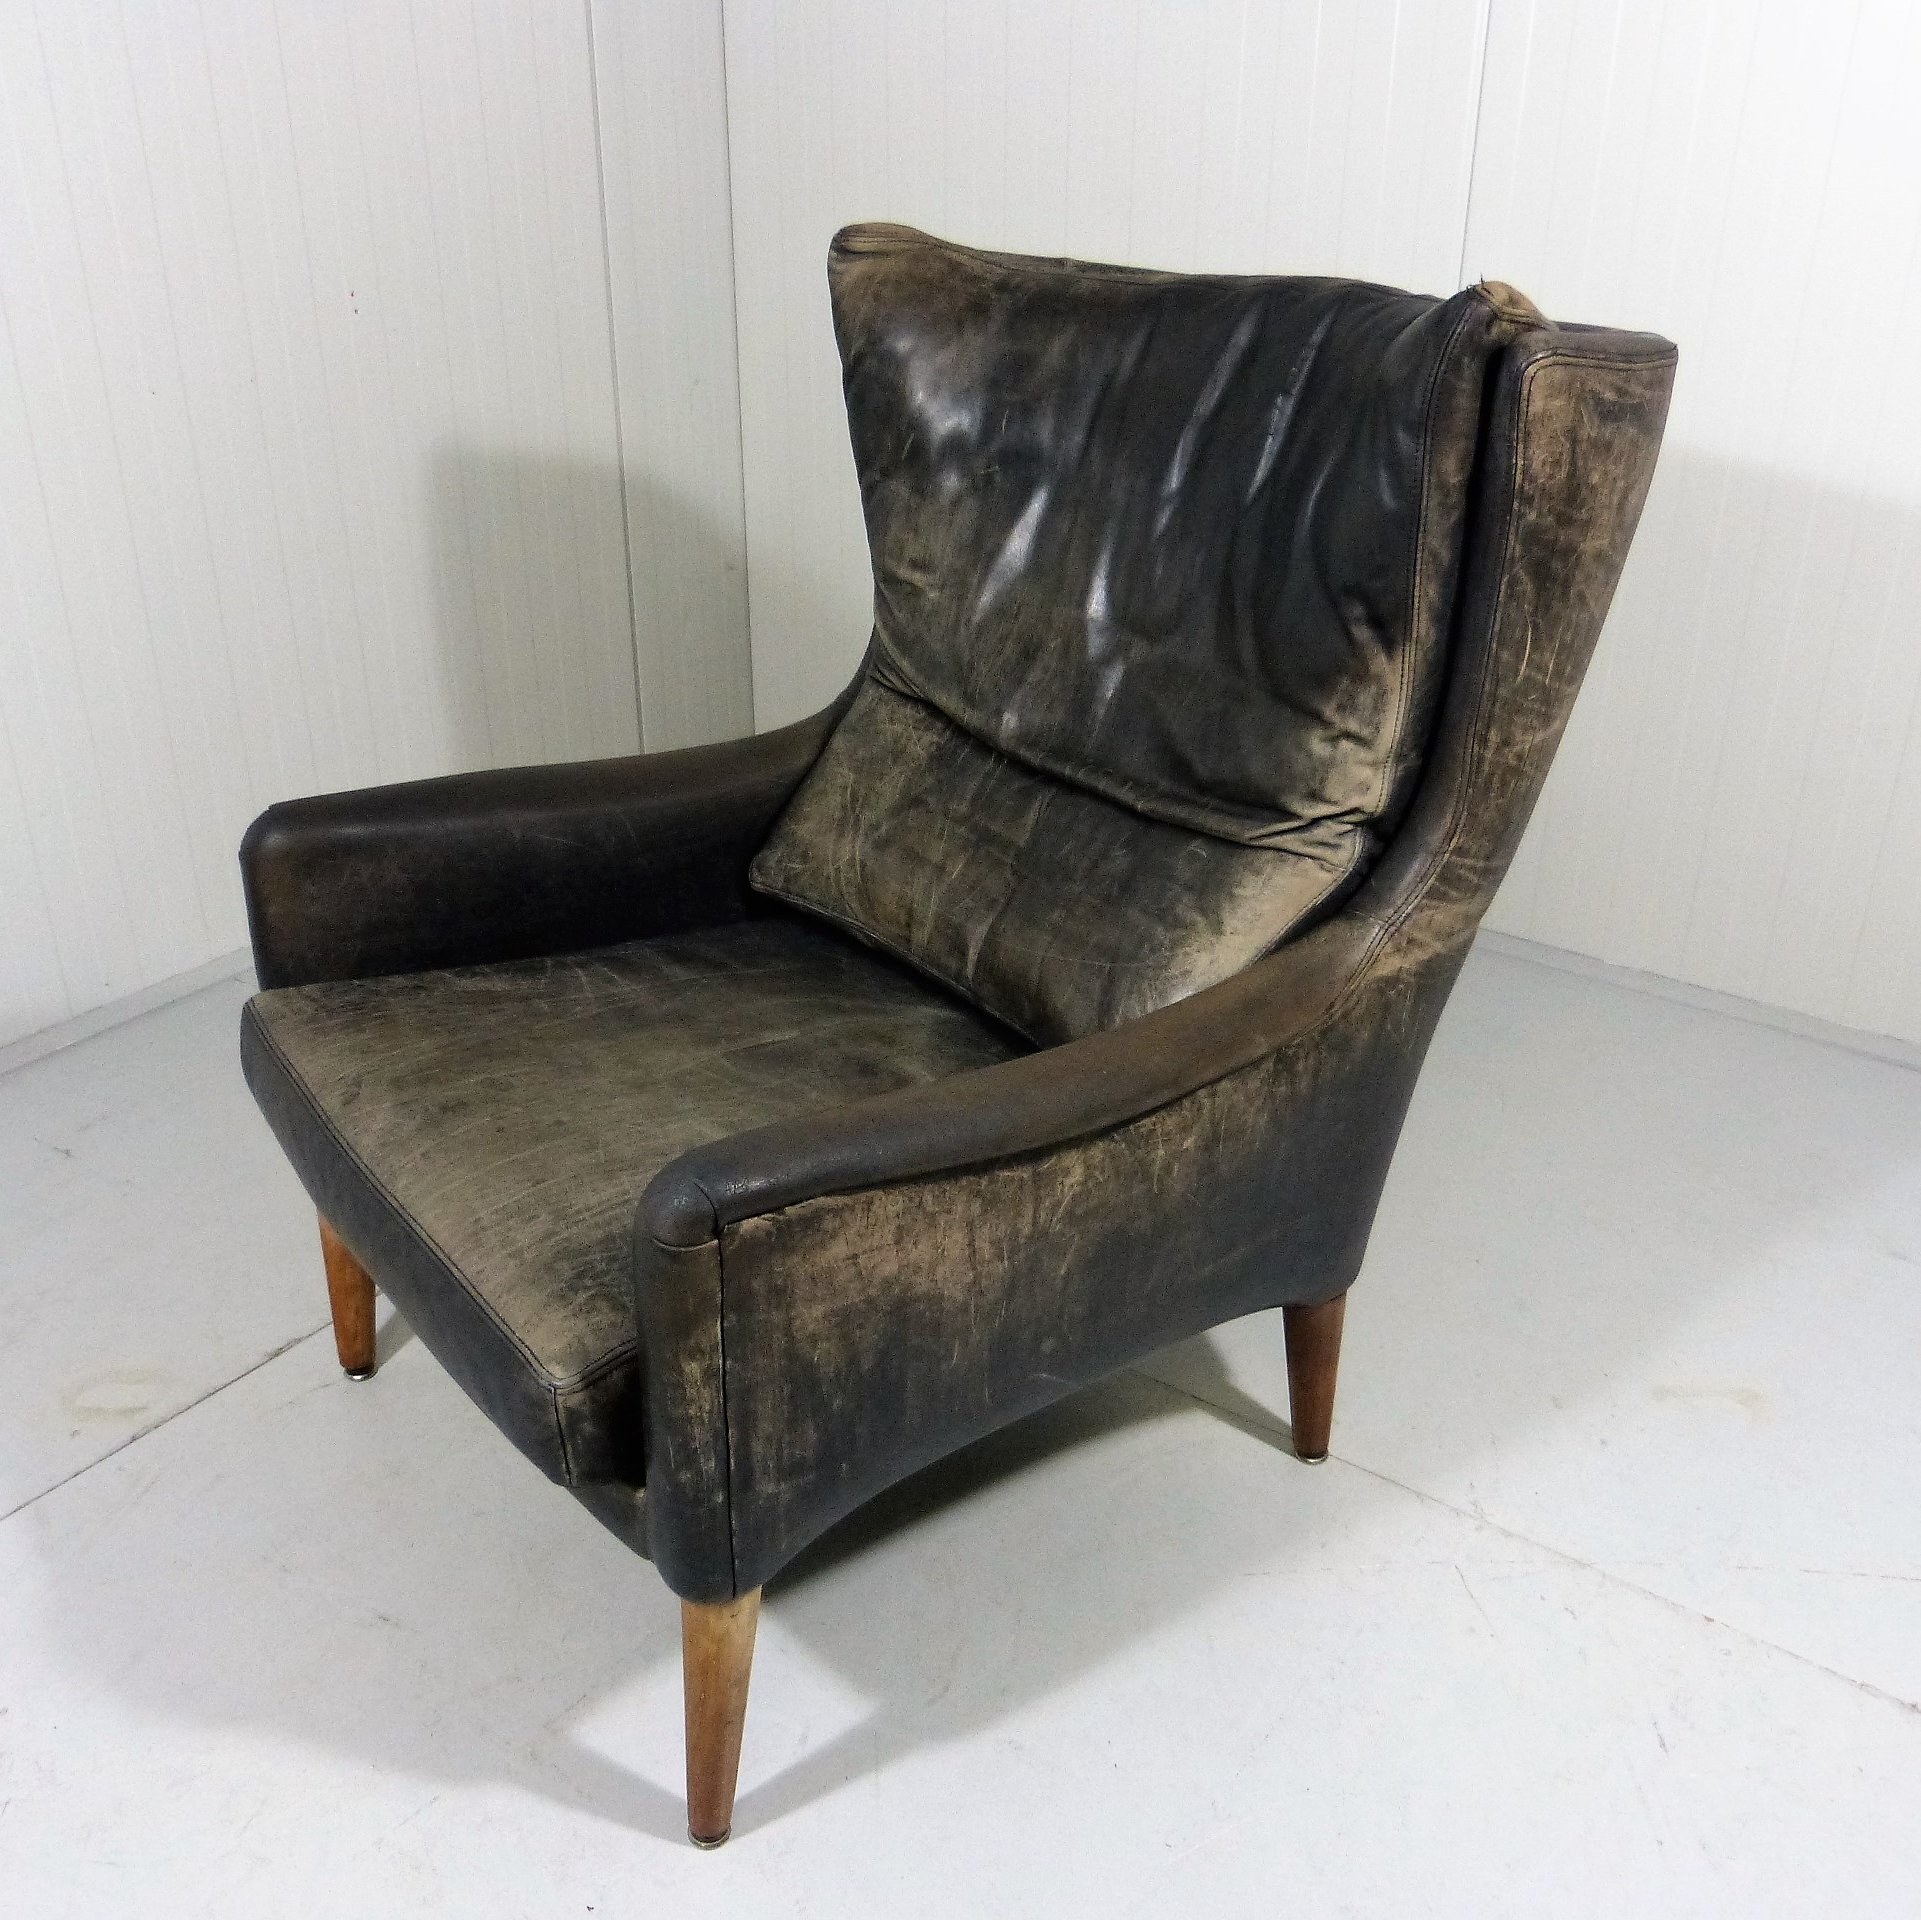 Comfortable Danish Leather Wingback Chair 77276